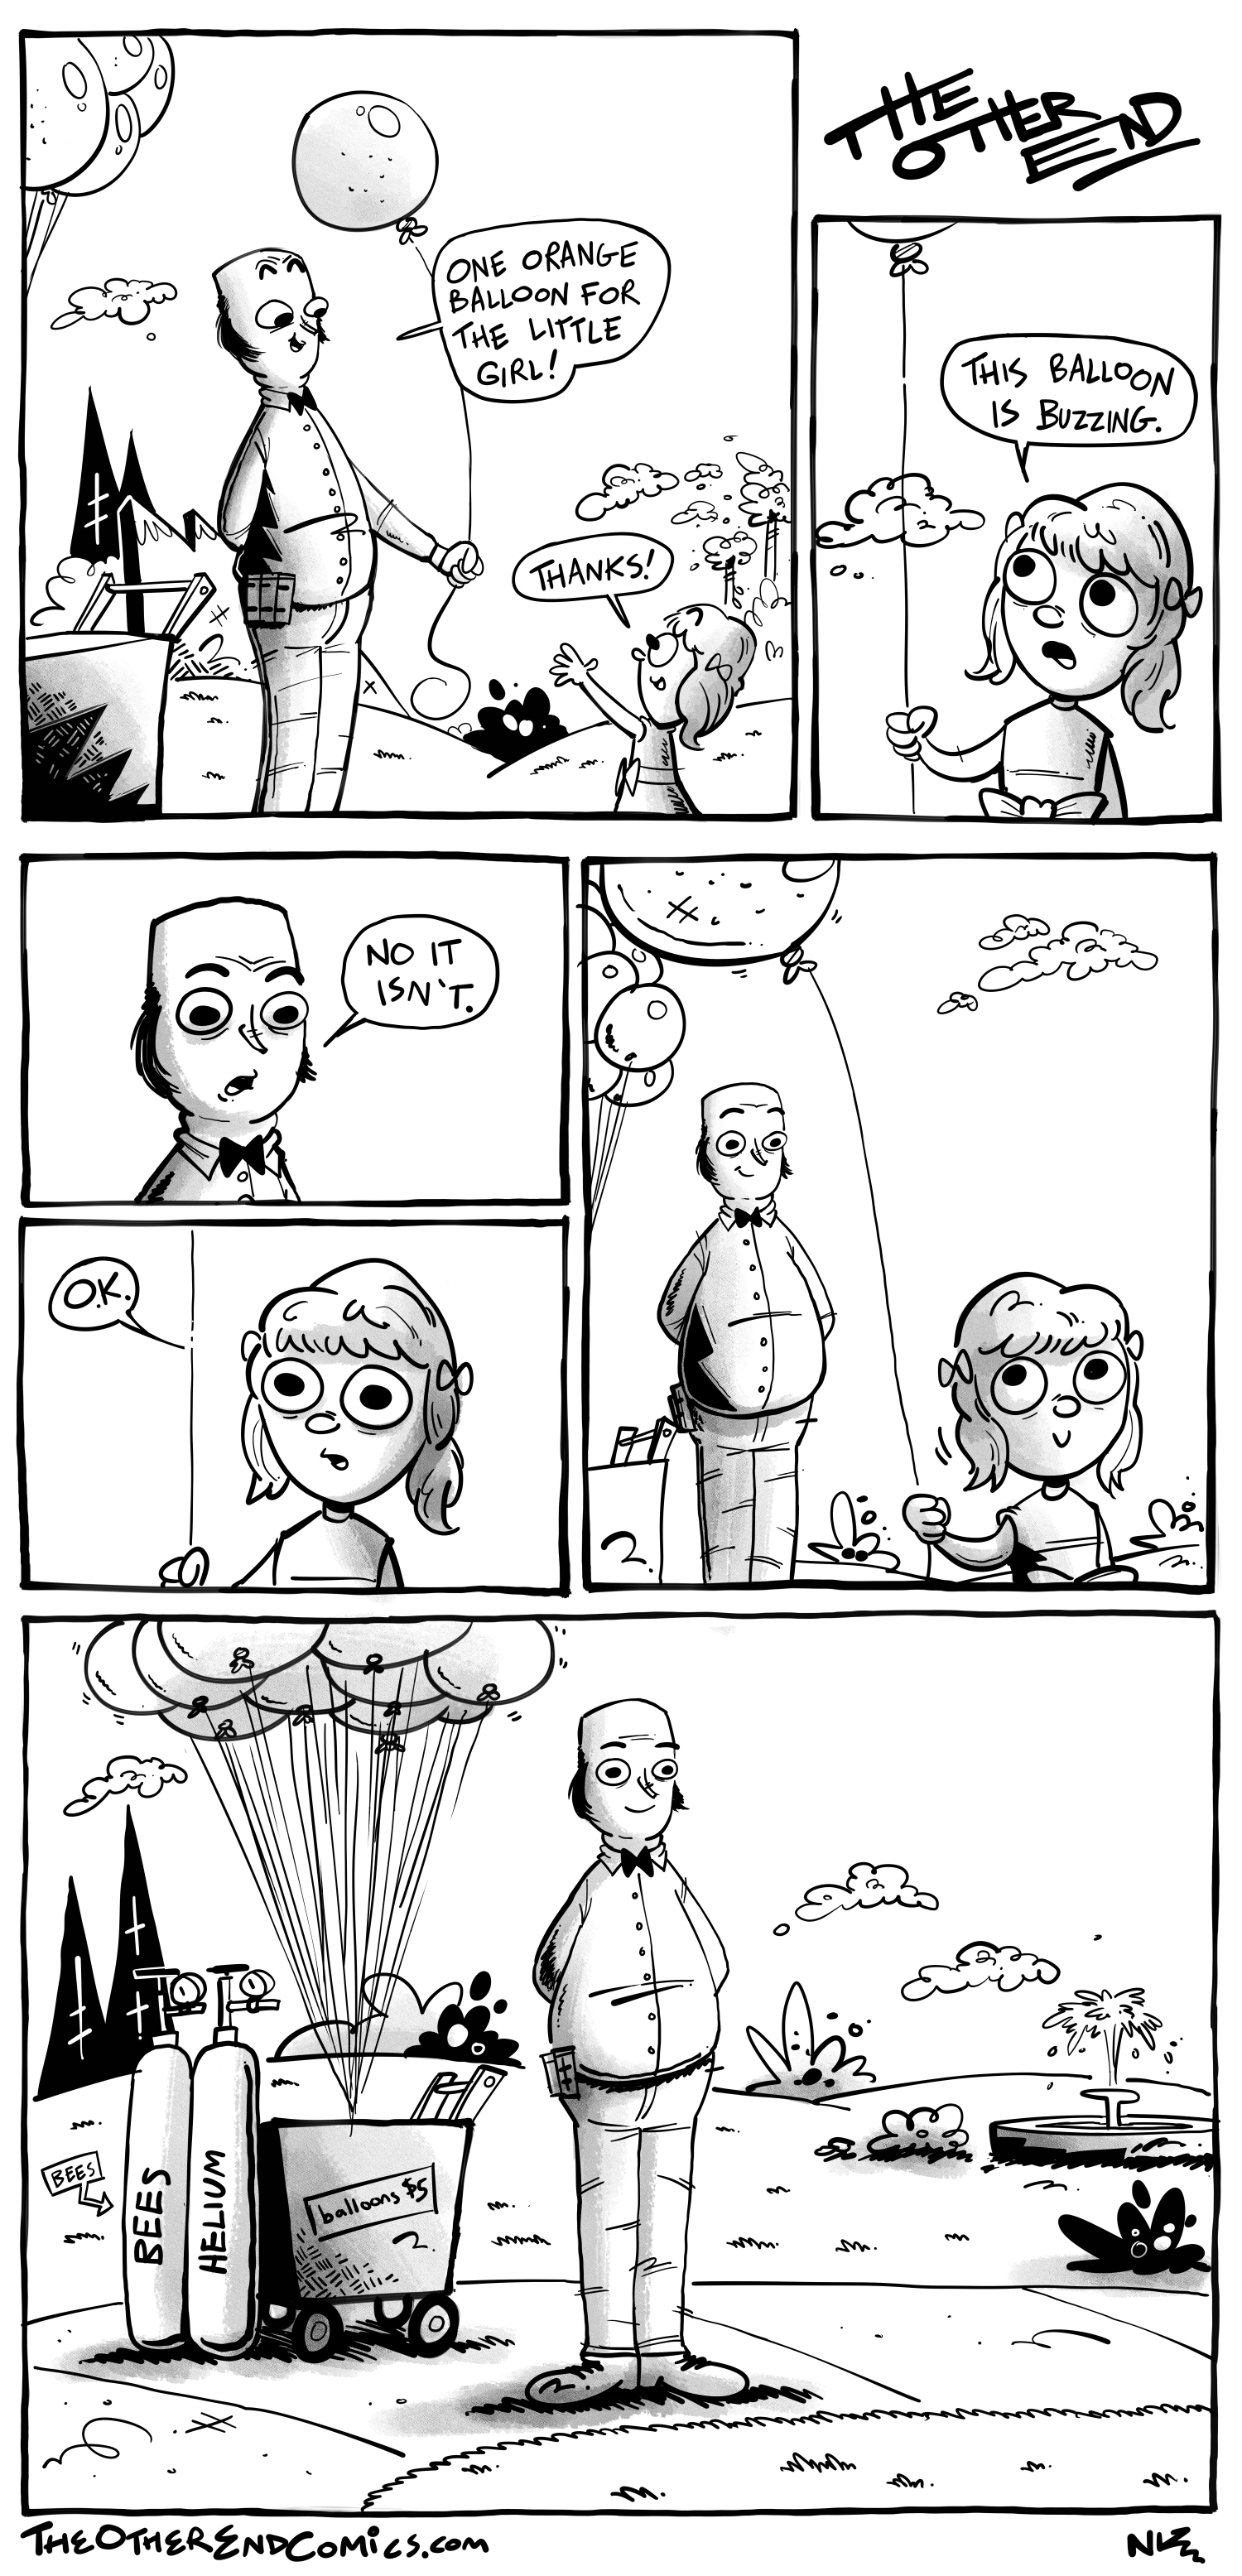 I don't even think that balloon is orange. This comic is so fake.